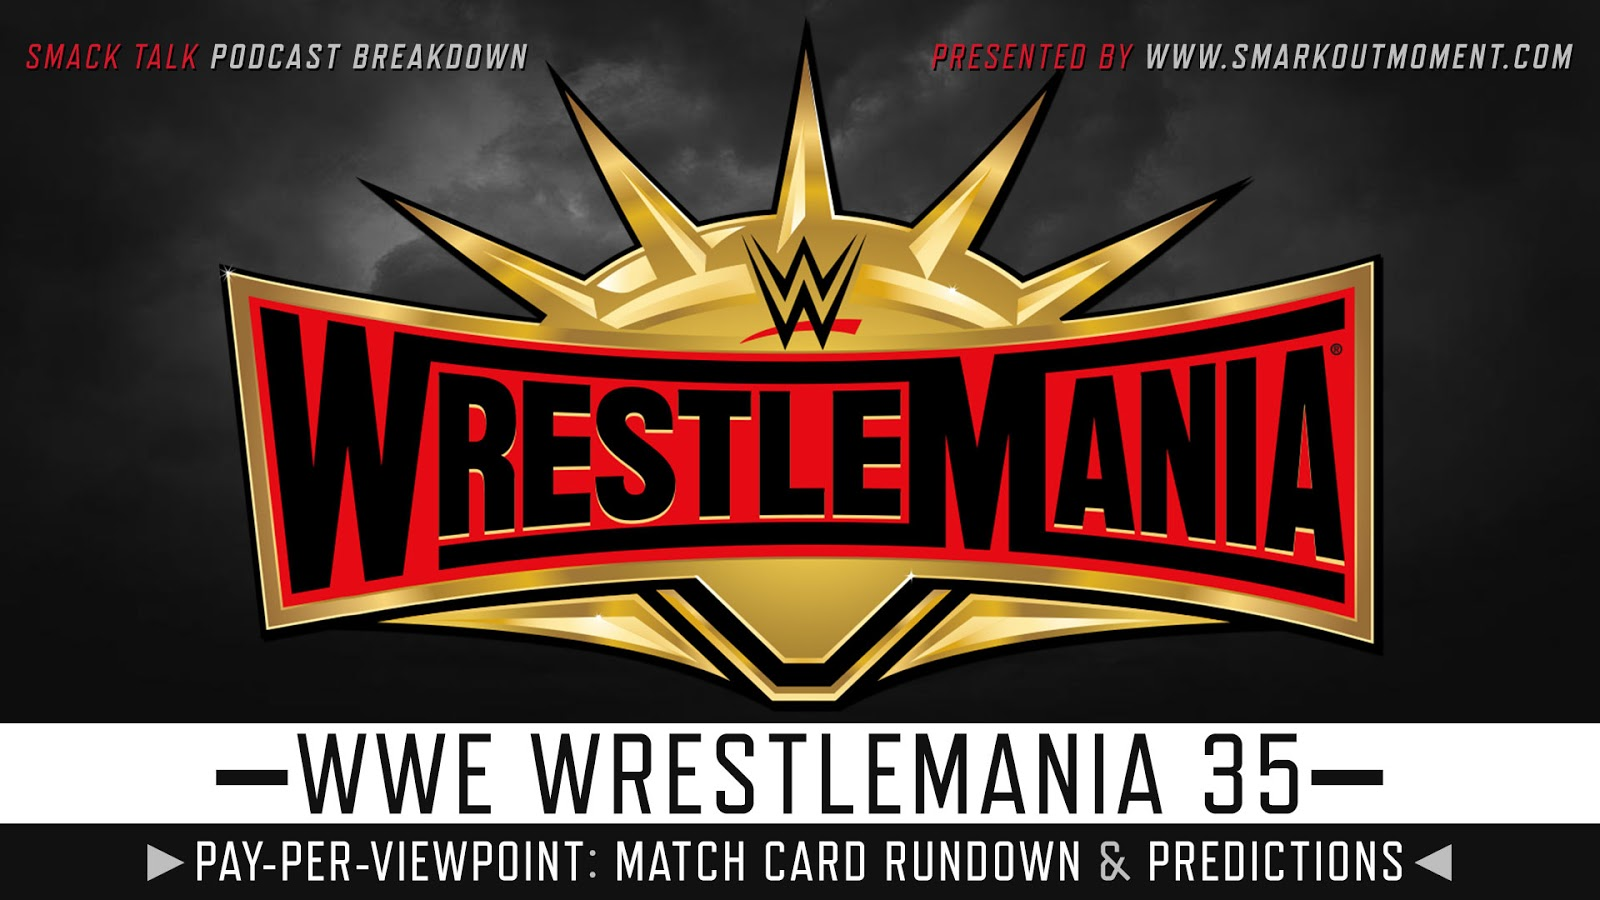 WWE WrestleMania 2019 spoilers podcast